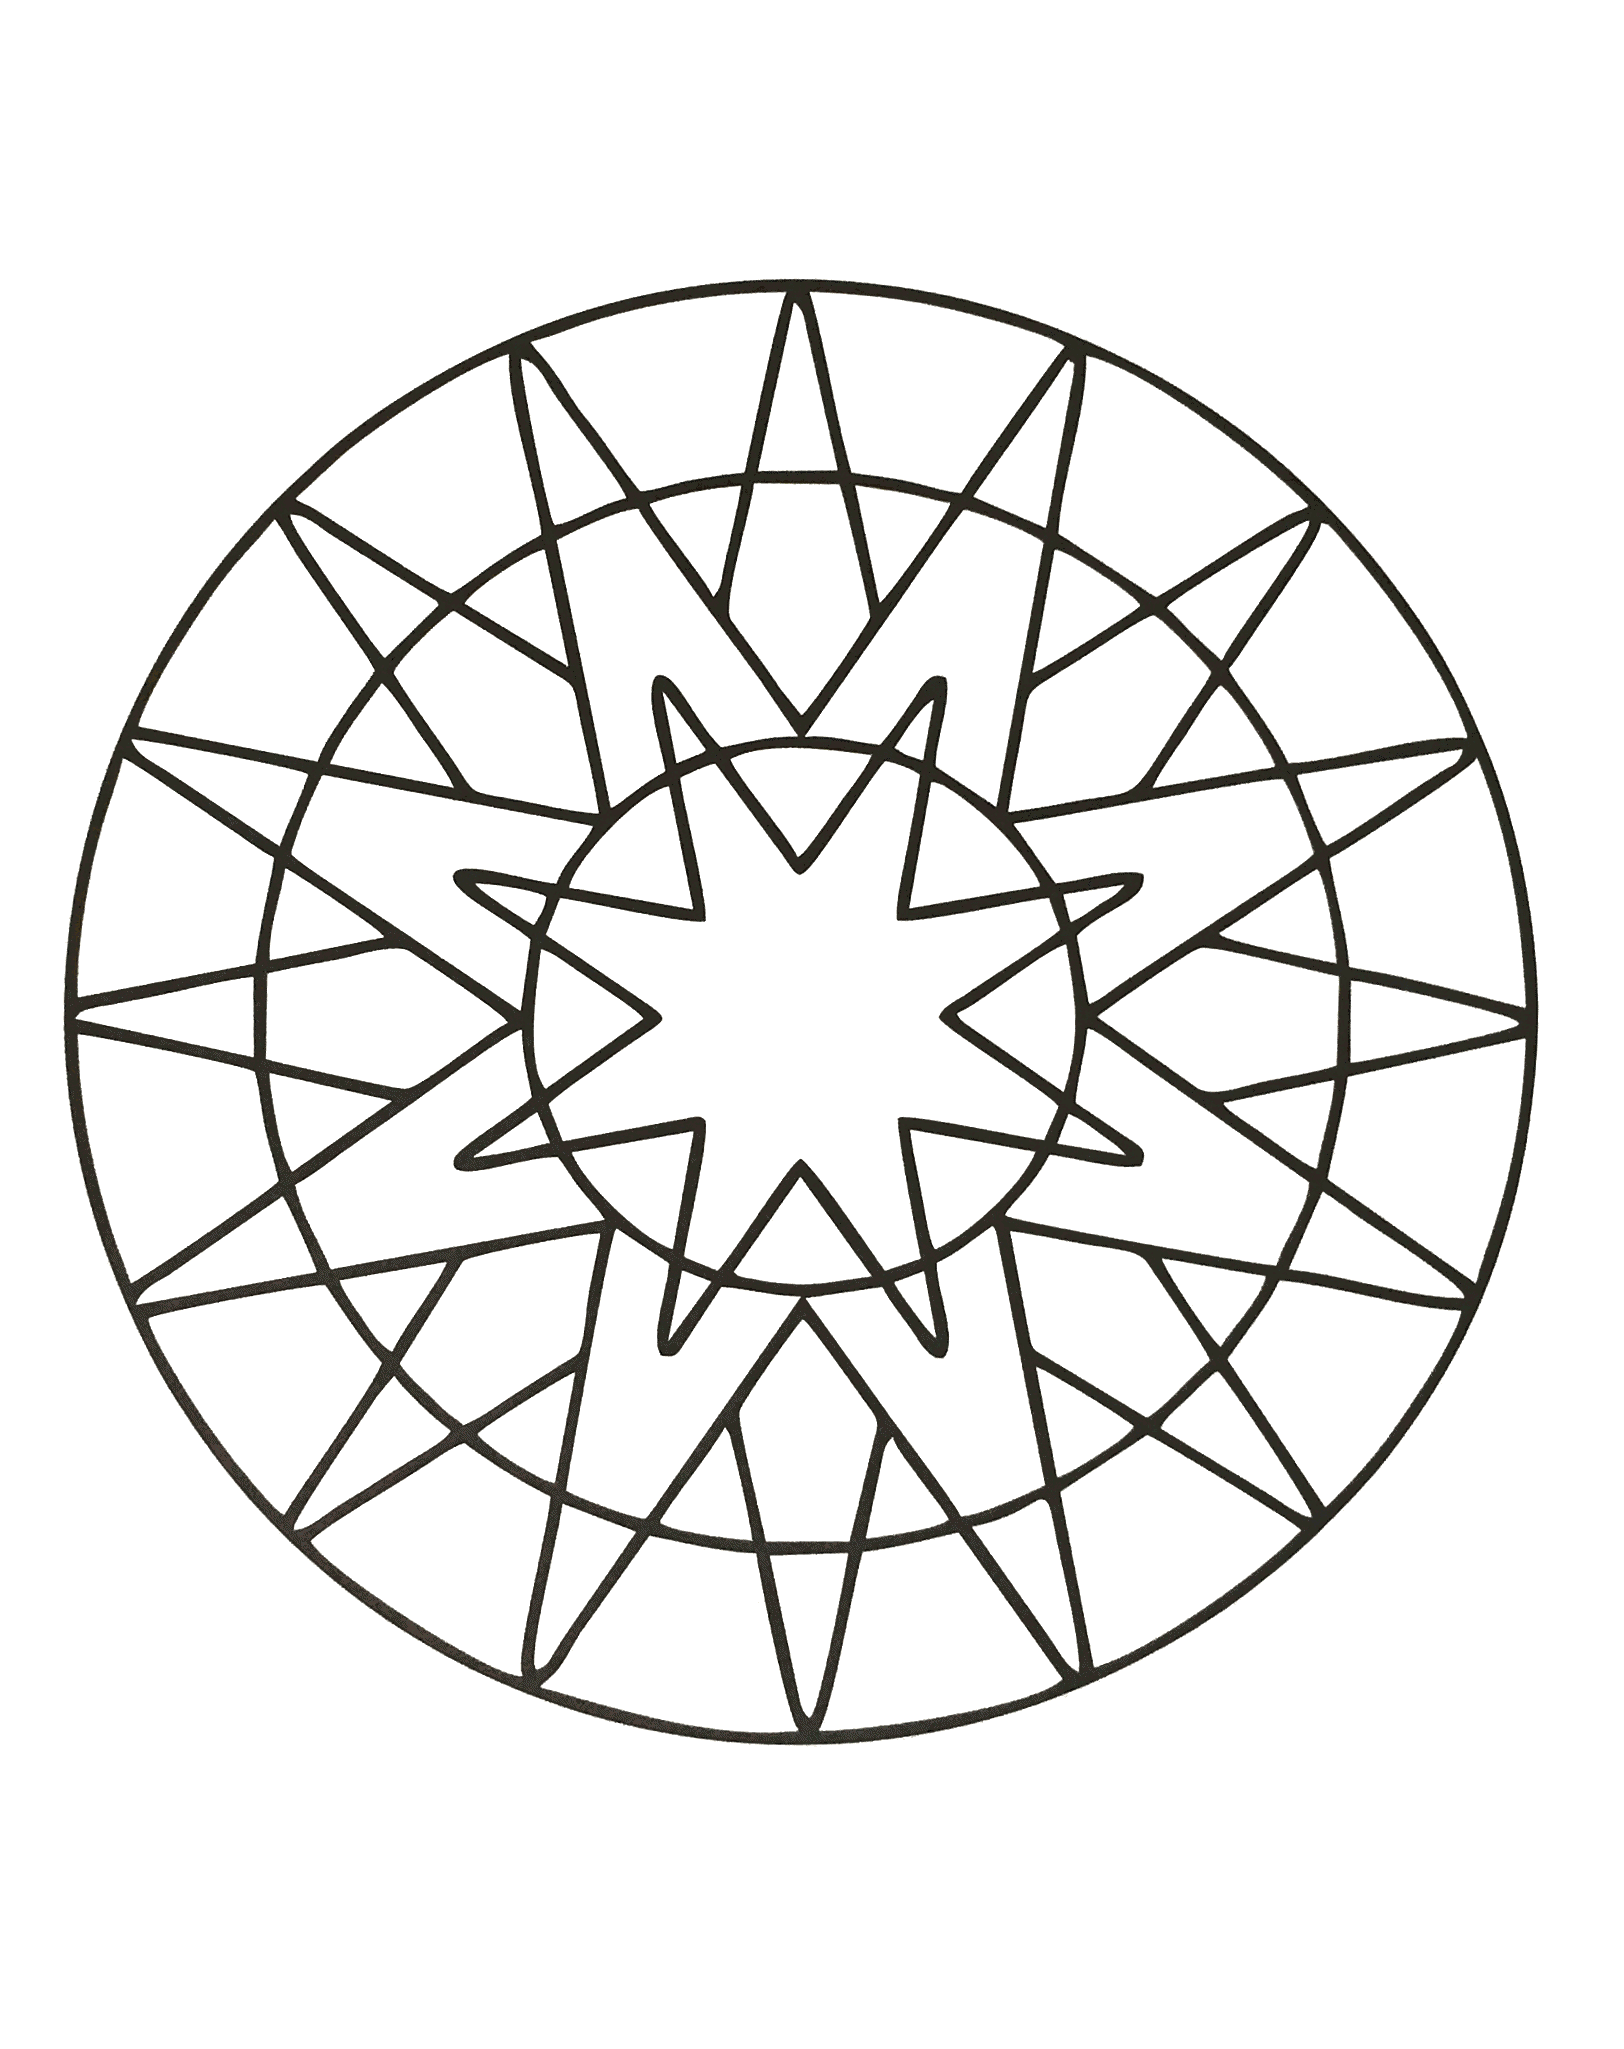 Unique and inspiring Zen & Anti-stress Mandala. Mandalas are designed to help you become free from your worries, because they make it easier to focus on the present moment.